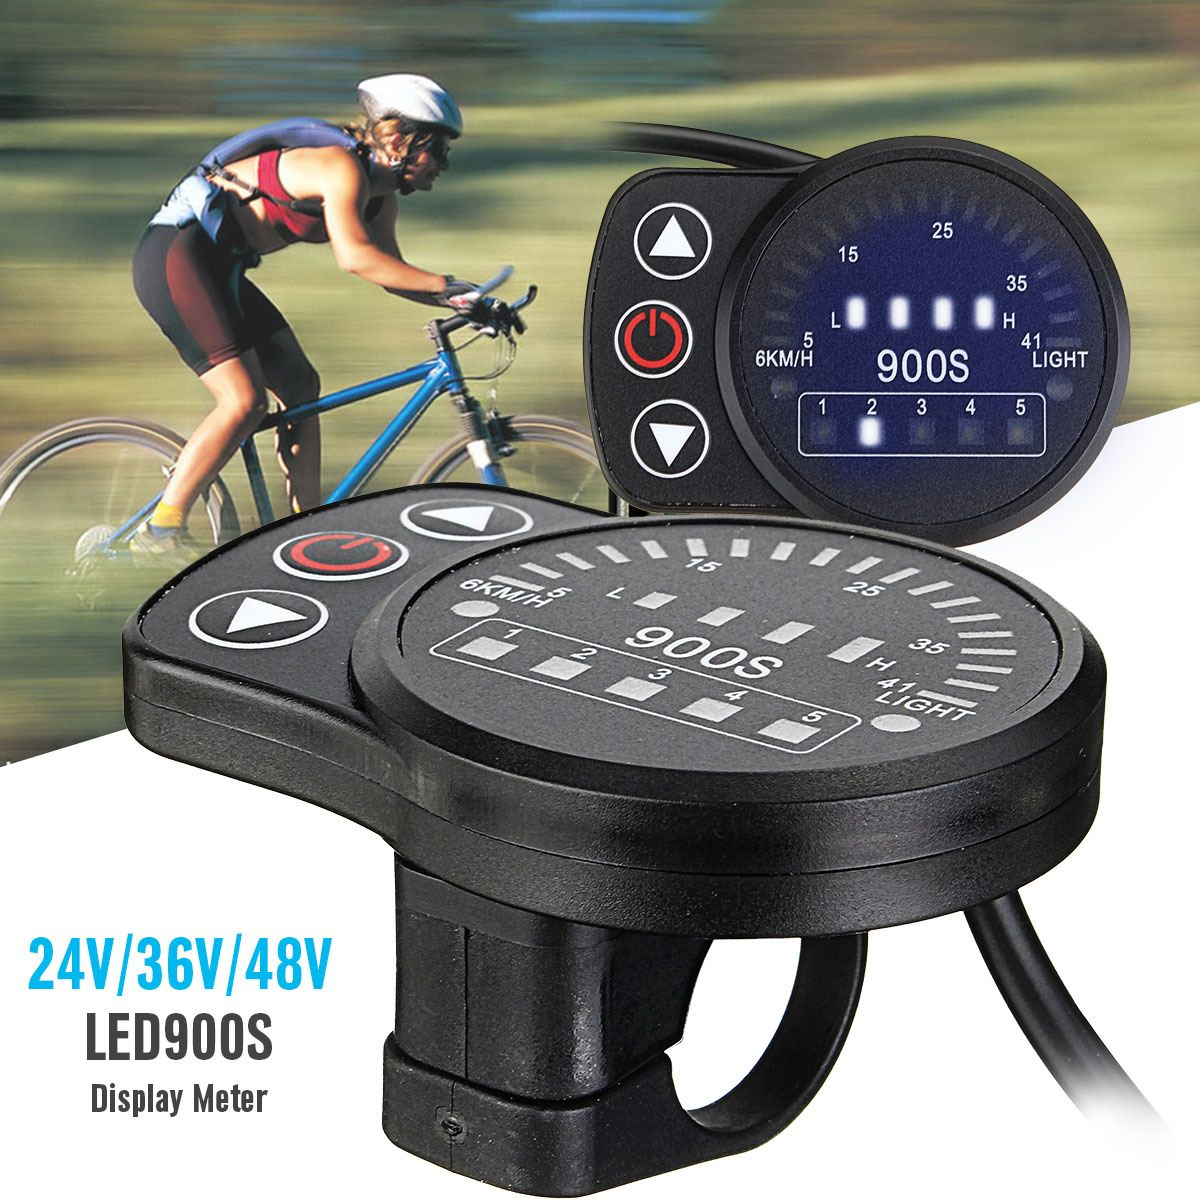 Accessories Precise Ebike Led Display Electric Bicycle Control Panel Electric Scooter Display Meter Intelligent 24v/36v/48v Kt-led900s Bike